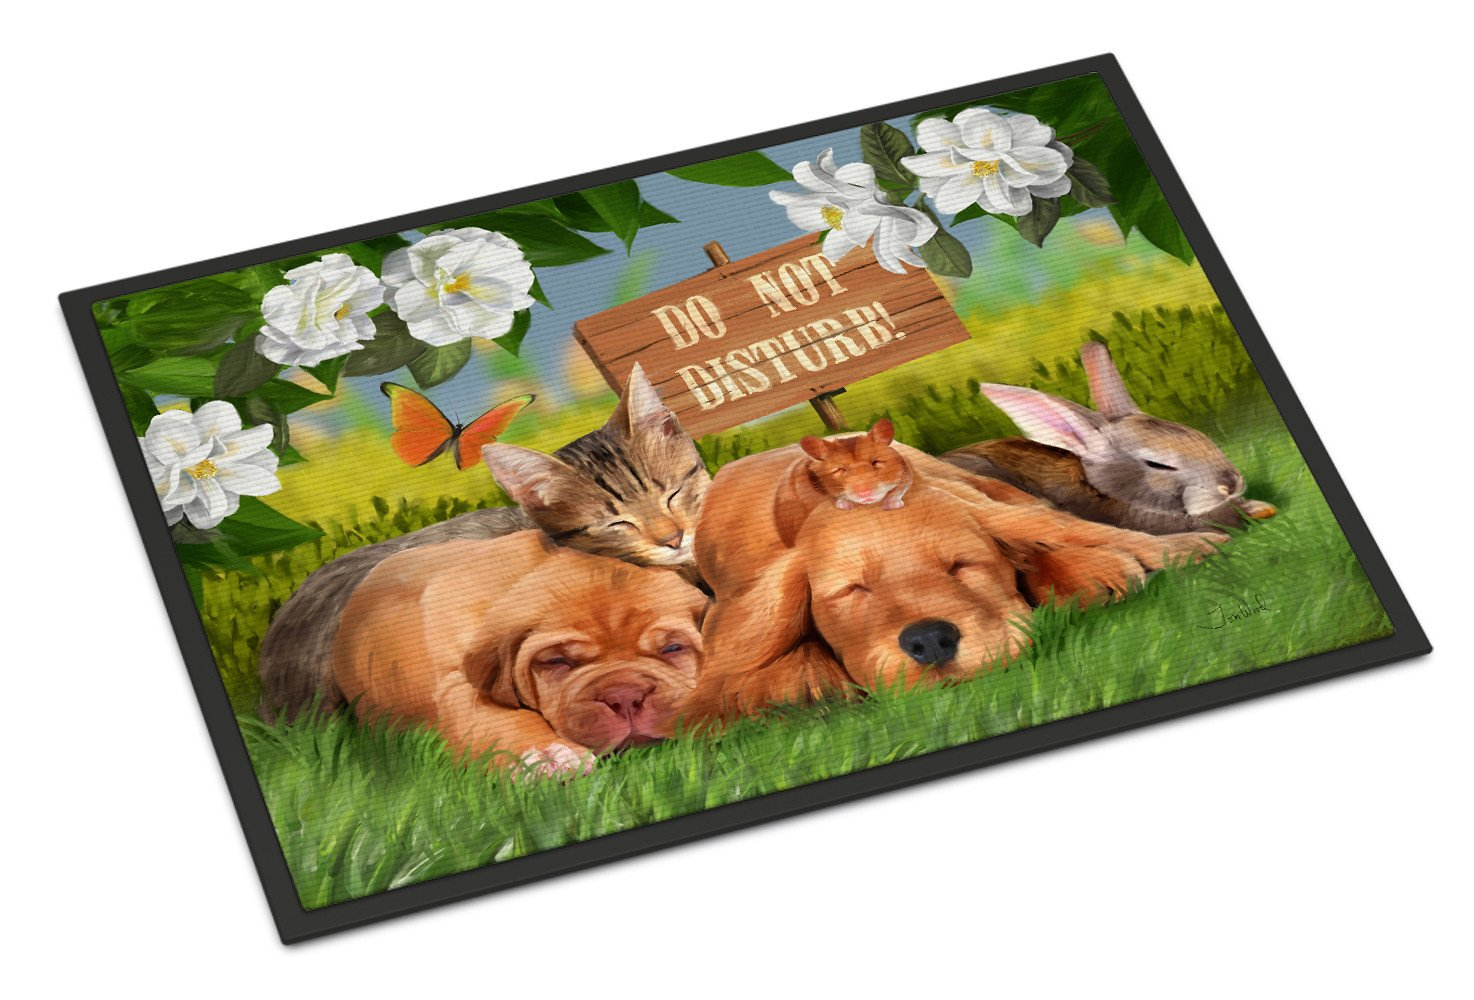 Golden Retriever and Sharpei Do Not Disturb Indoor or Outdoor Mat 18x27 PTW2048MAT - the-store.com